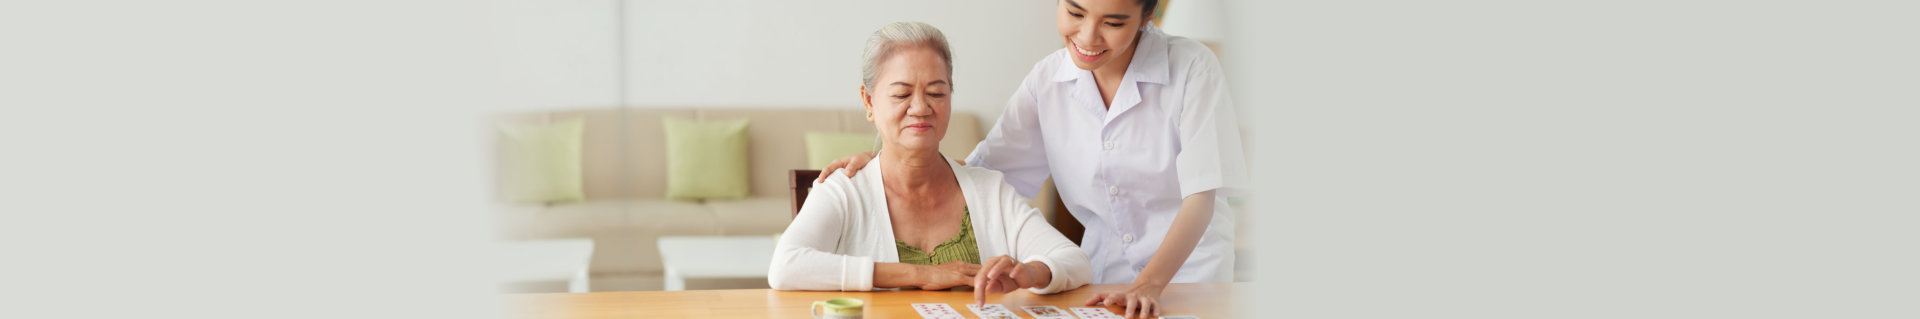 caregiver and senior woman playing cards